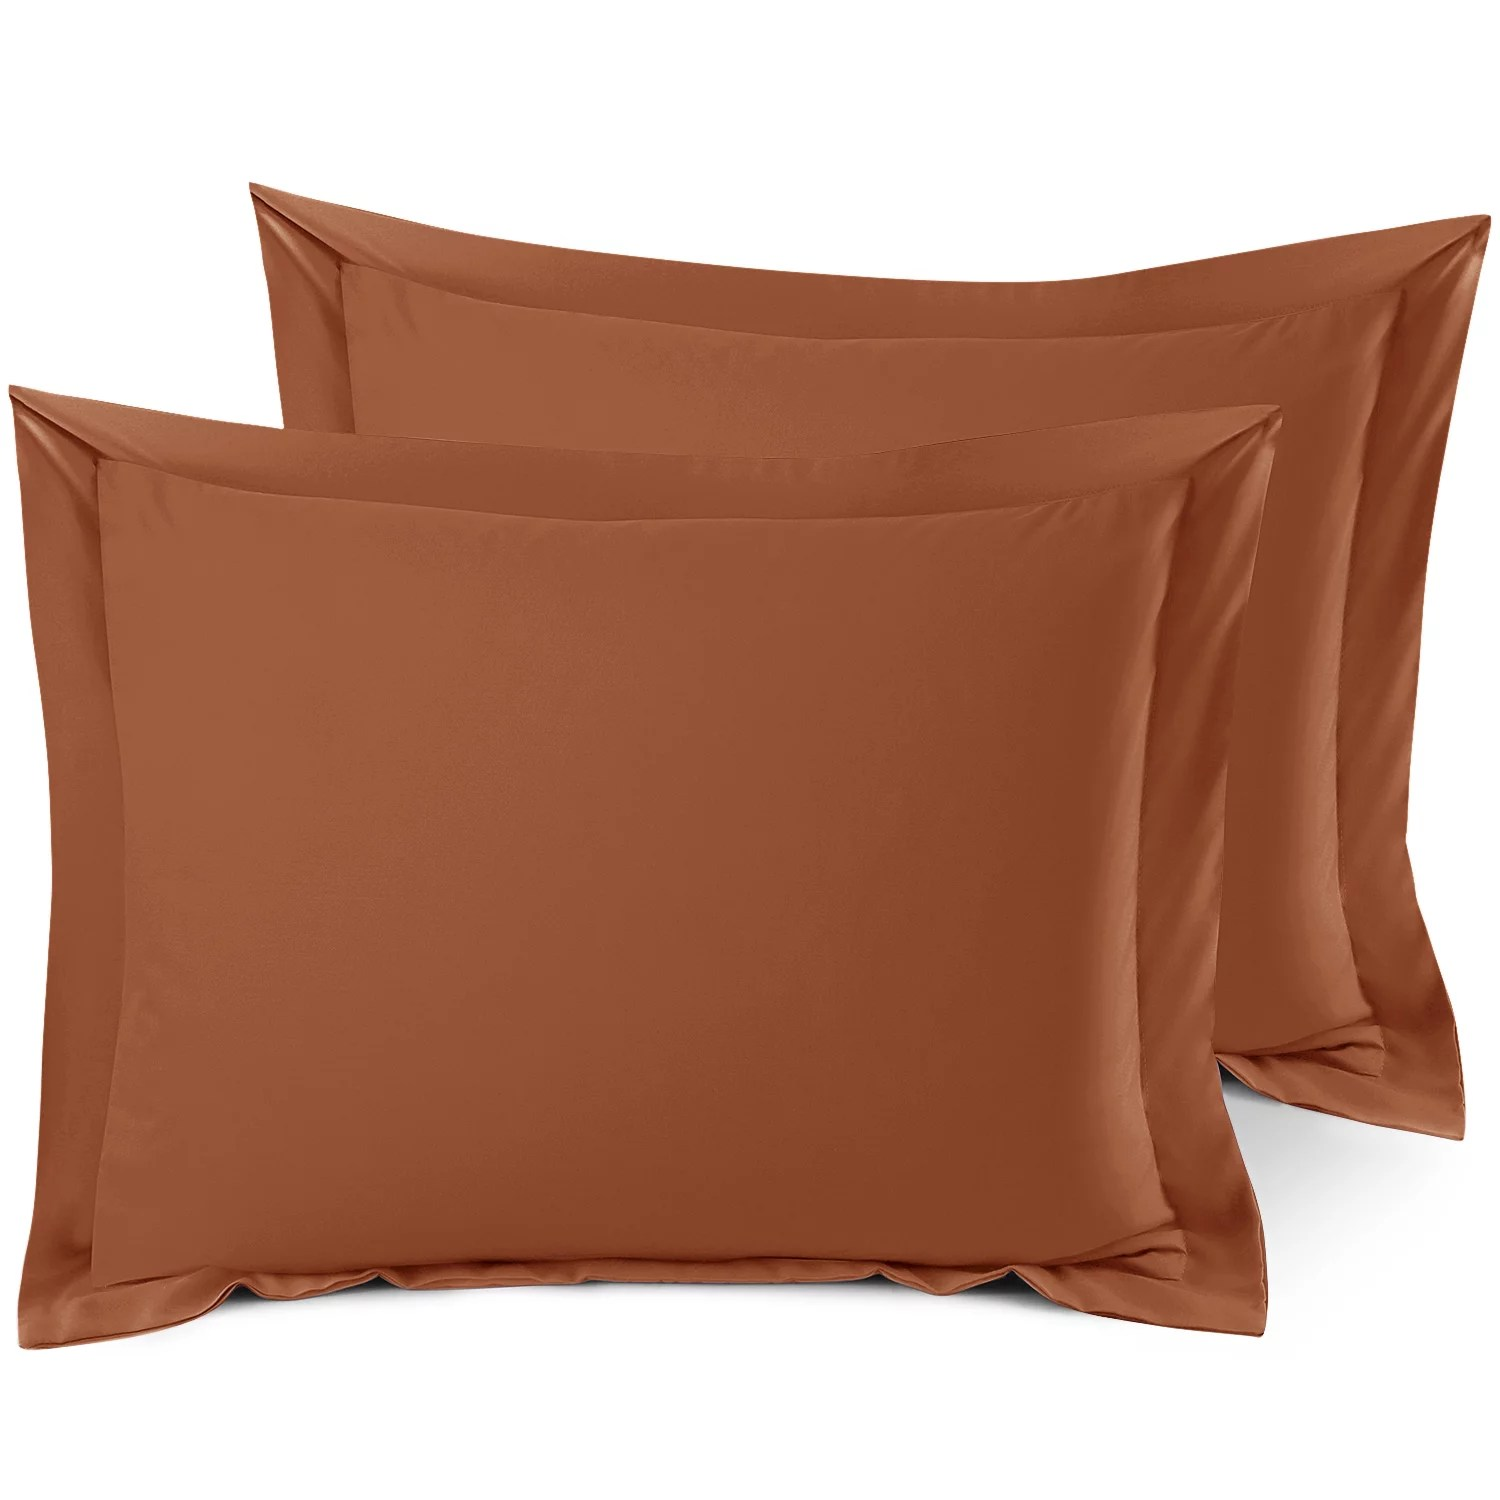 set of 2 standard 20 x26 size pillow shams rust orange hotel luxury soft double brushed microfiber hypoallergenic bed pillow cases cover